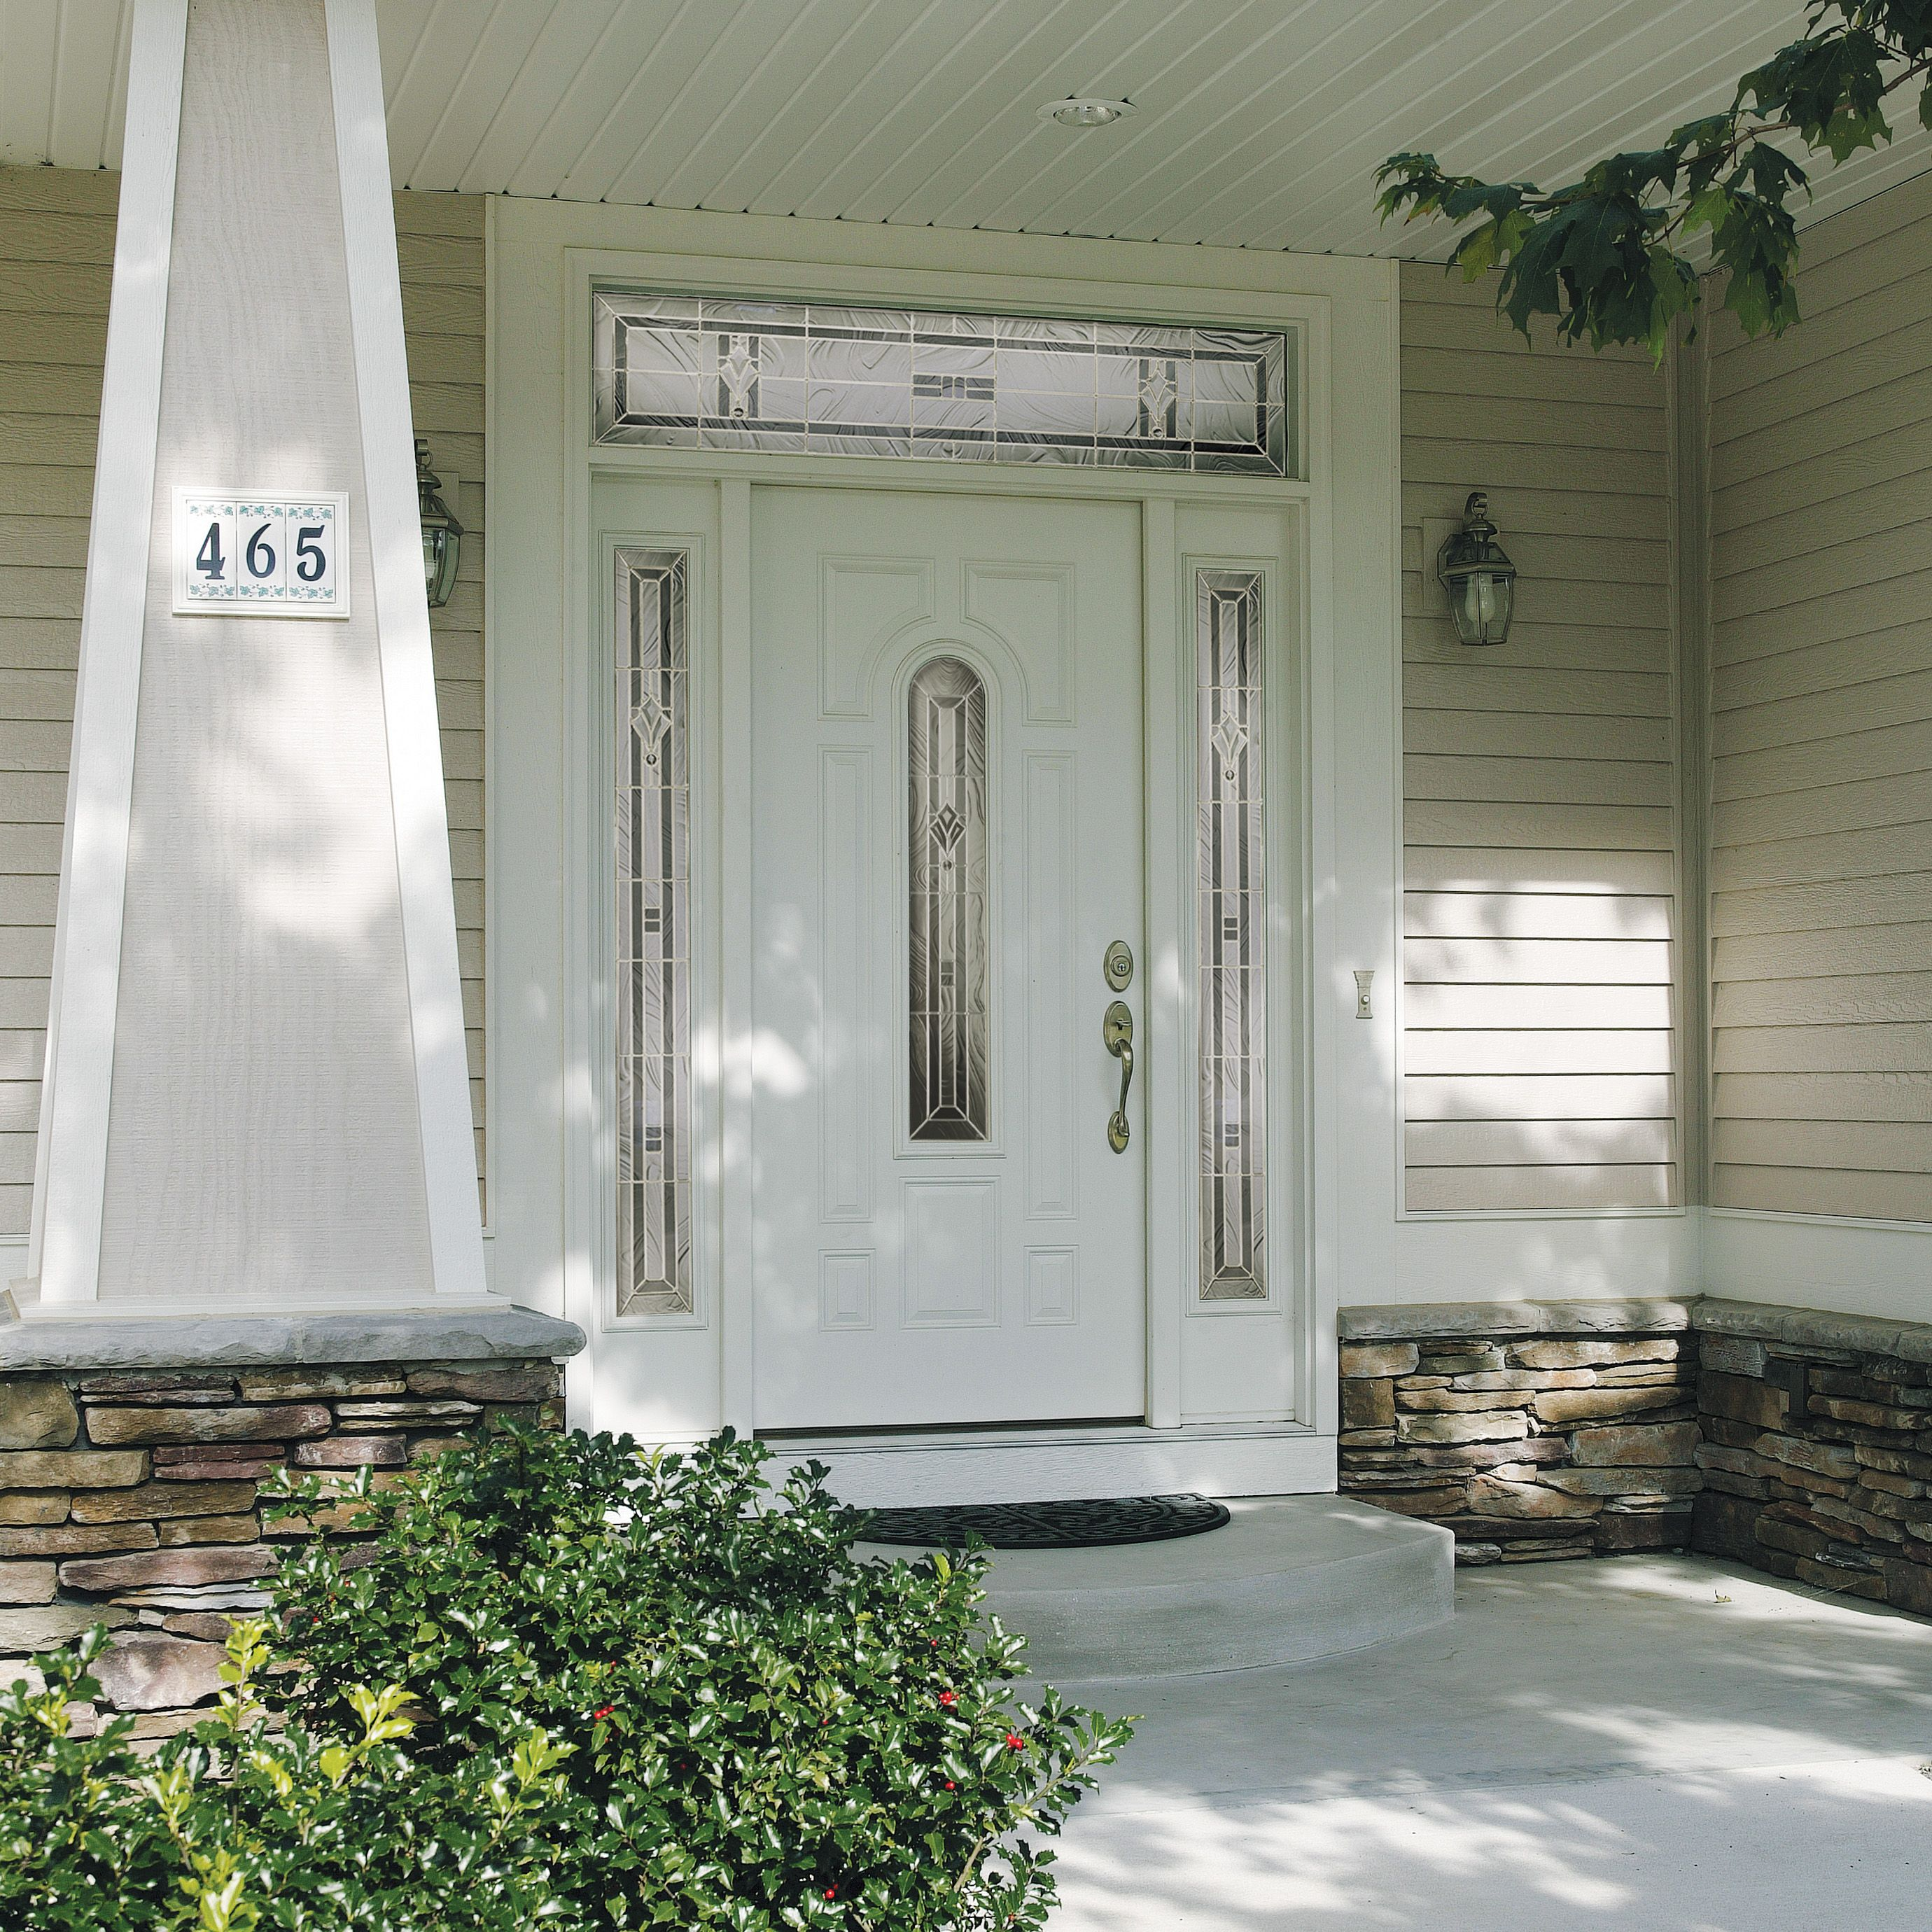 Jeld wen smooth pro fiberglass exterior door matching - Jeld wen exterior doors with sidelights ...